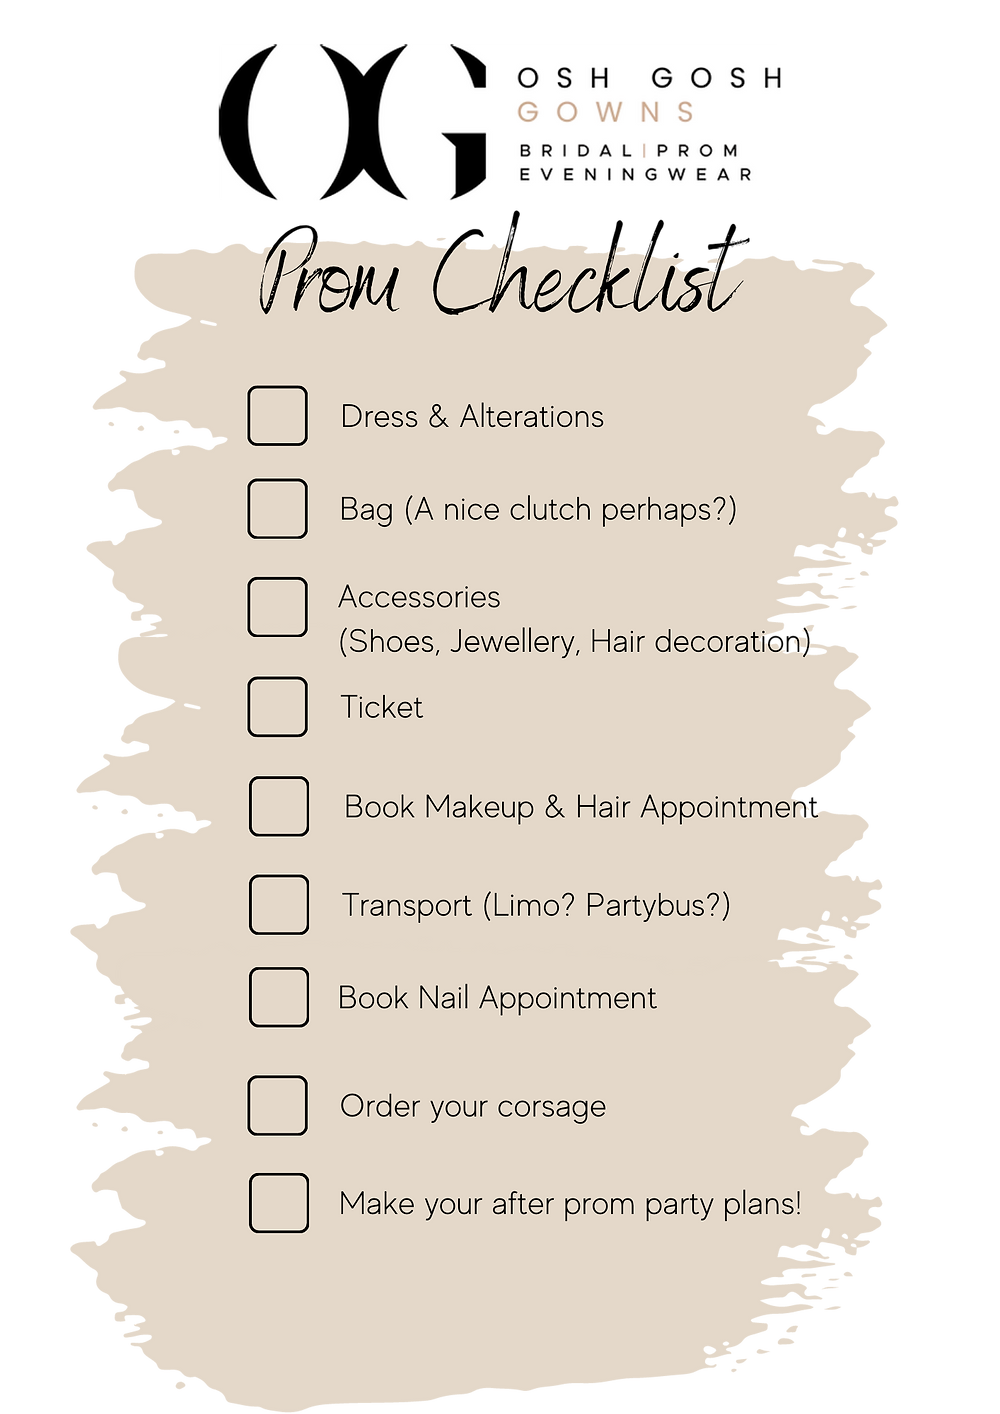 Osh Gosh Gowns in Scunthorpe Lincoln have put together a handy checklist for your prom. To make sure you don't forget to choose the dress, book your nail and hair appointments, choose your accessories and more. Osh Gosh Gowns are stockists of Prom dresses in Scunthorpe Lincoln